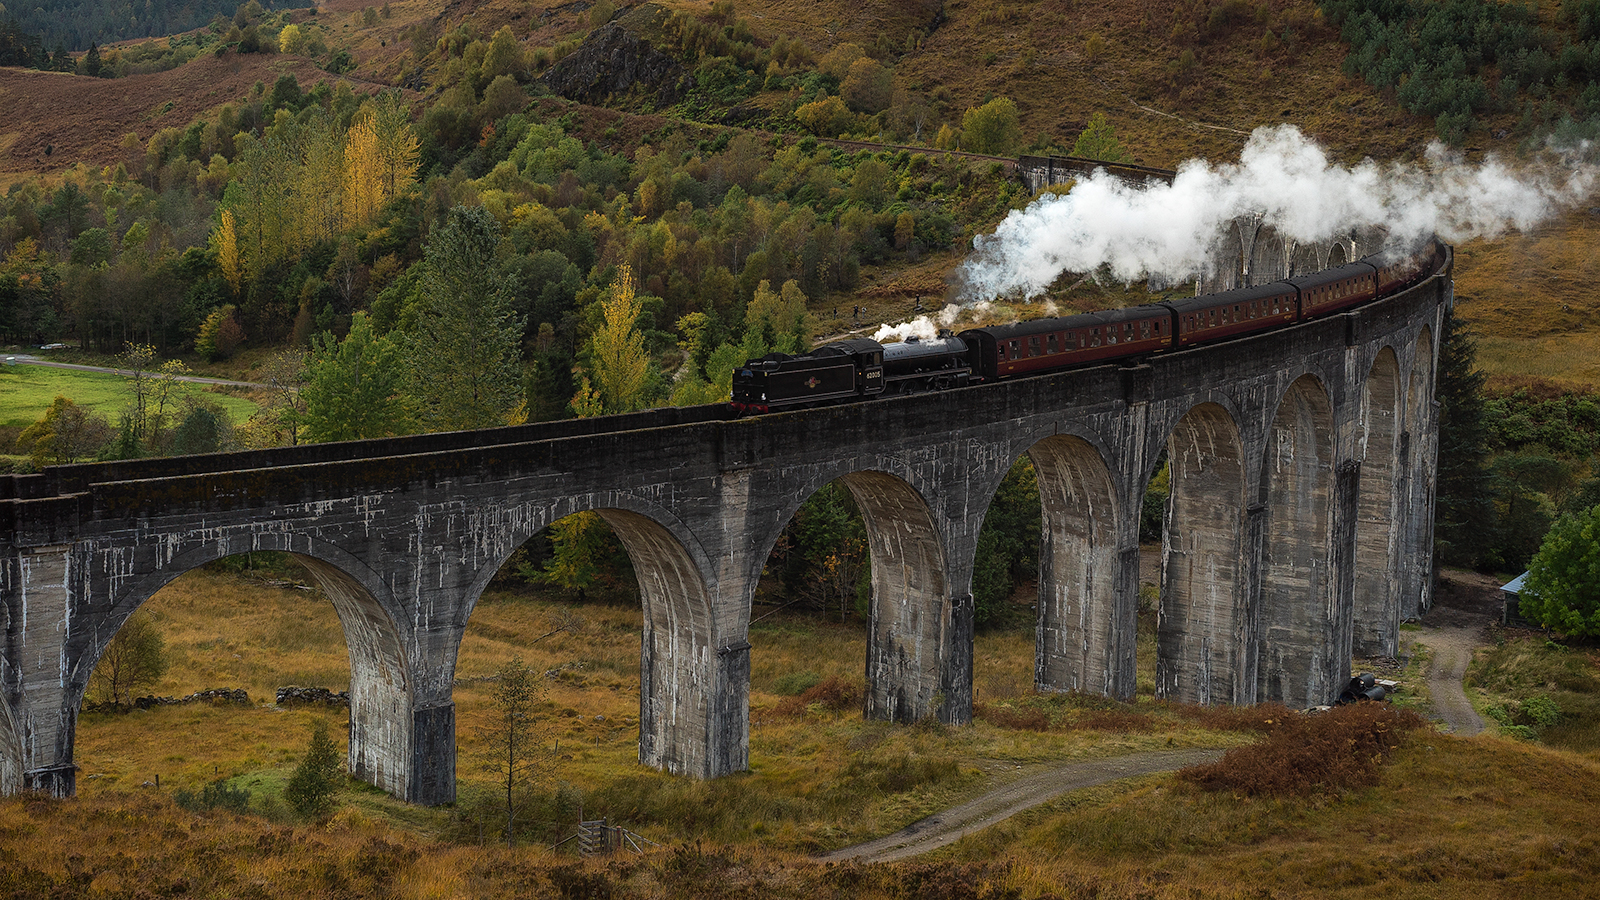 Calling all Harry Potter fans! All aboard the Hogwarts Express on the Scotland Photography Workshop!